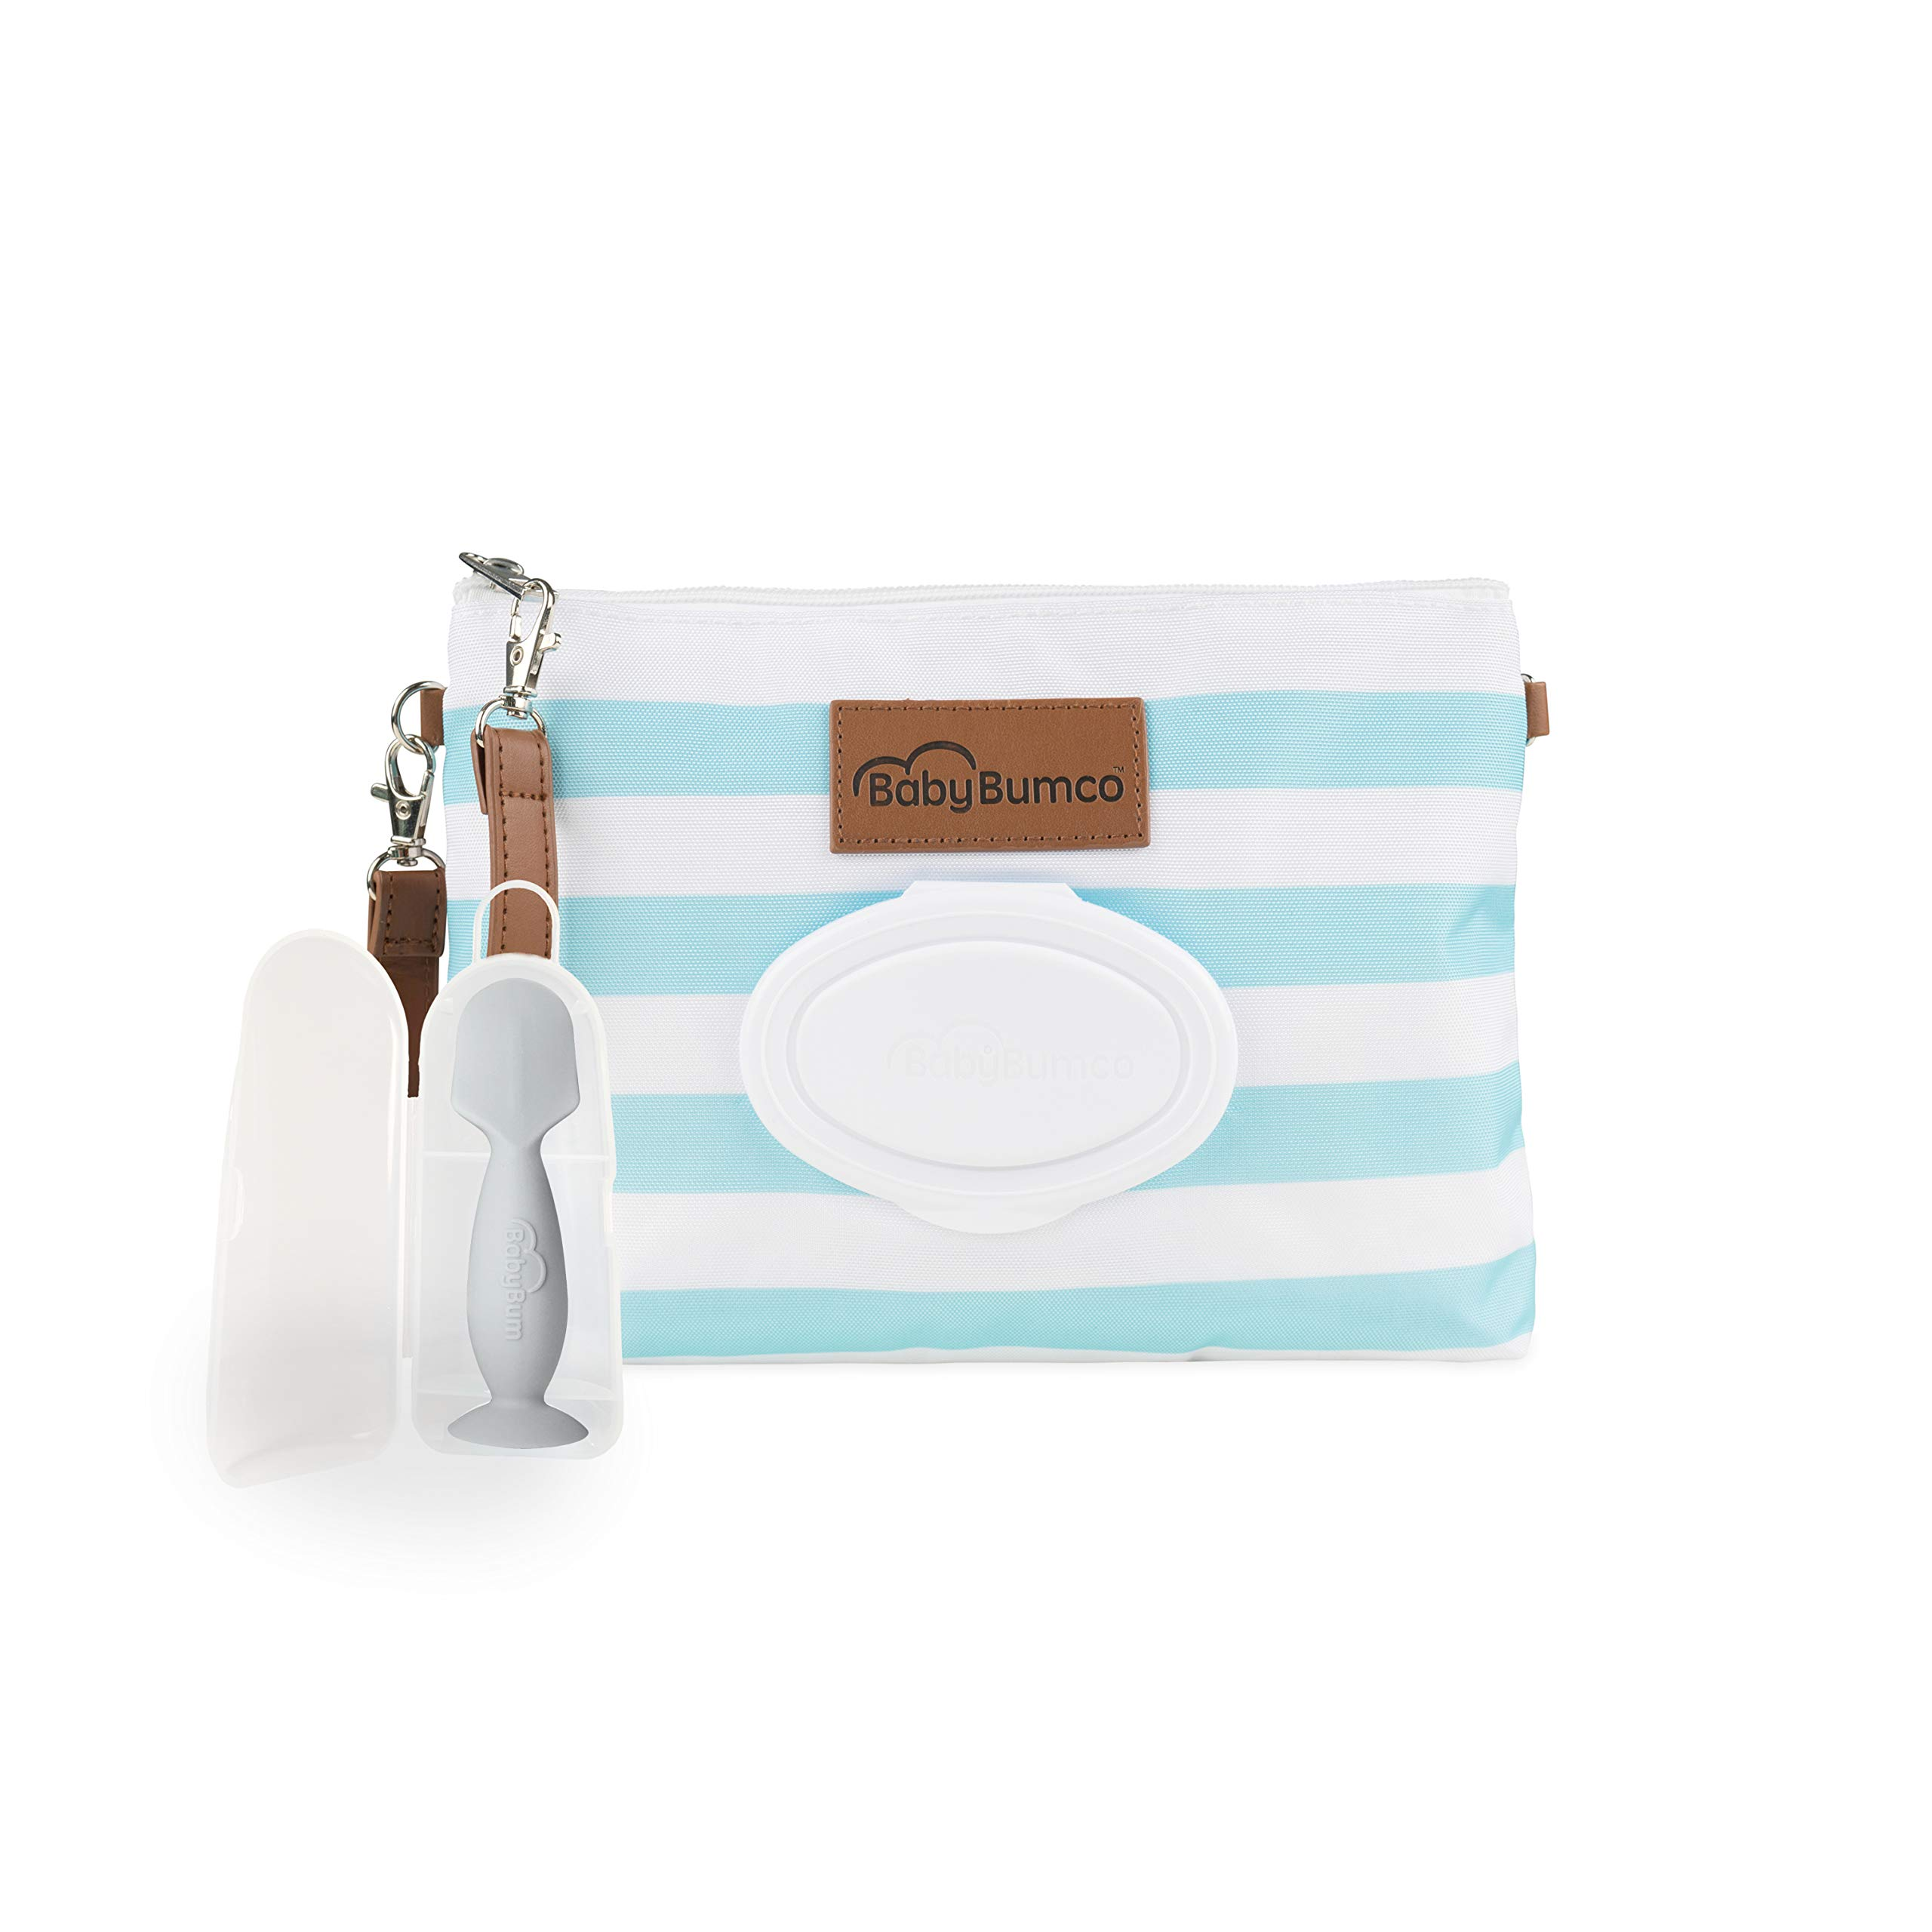 Diaper Clutch Bag and Mini Rash Cream Applicator with Travel Case, Soft Flexible Silicone - Water Resistant; Lightweight; Refillable Wipes Dispenser; Portable Changing Kit (Glossy Sky Blue + Gray)